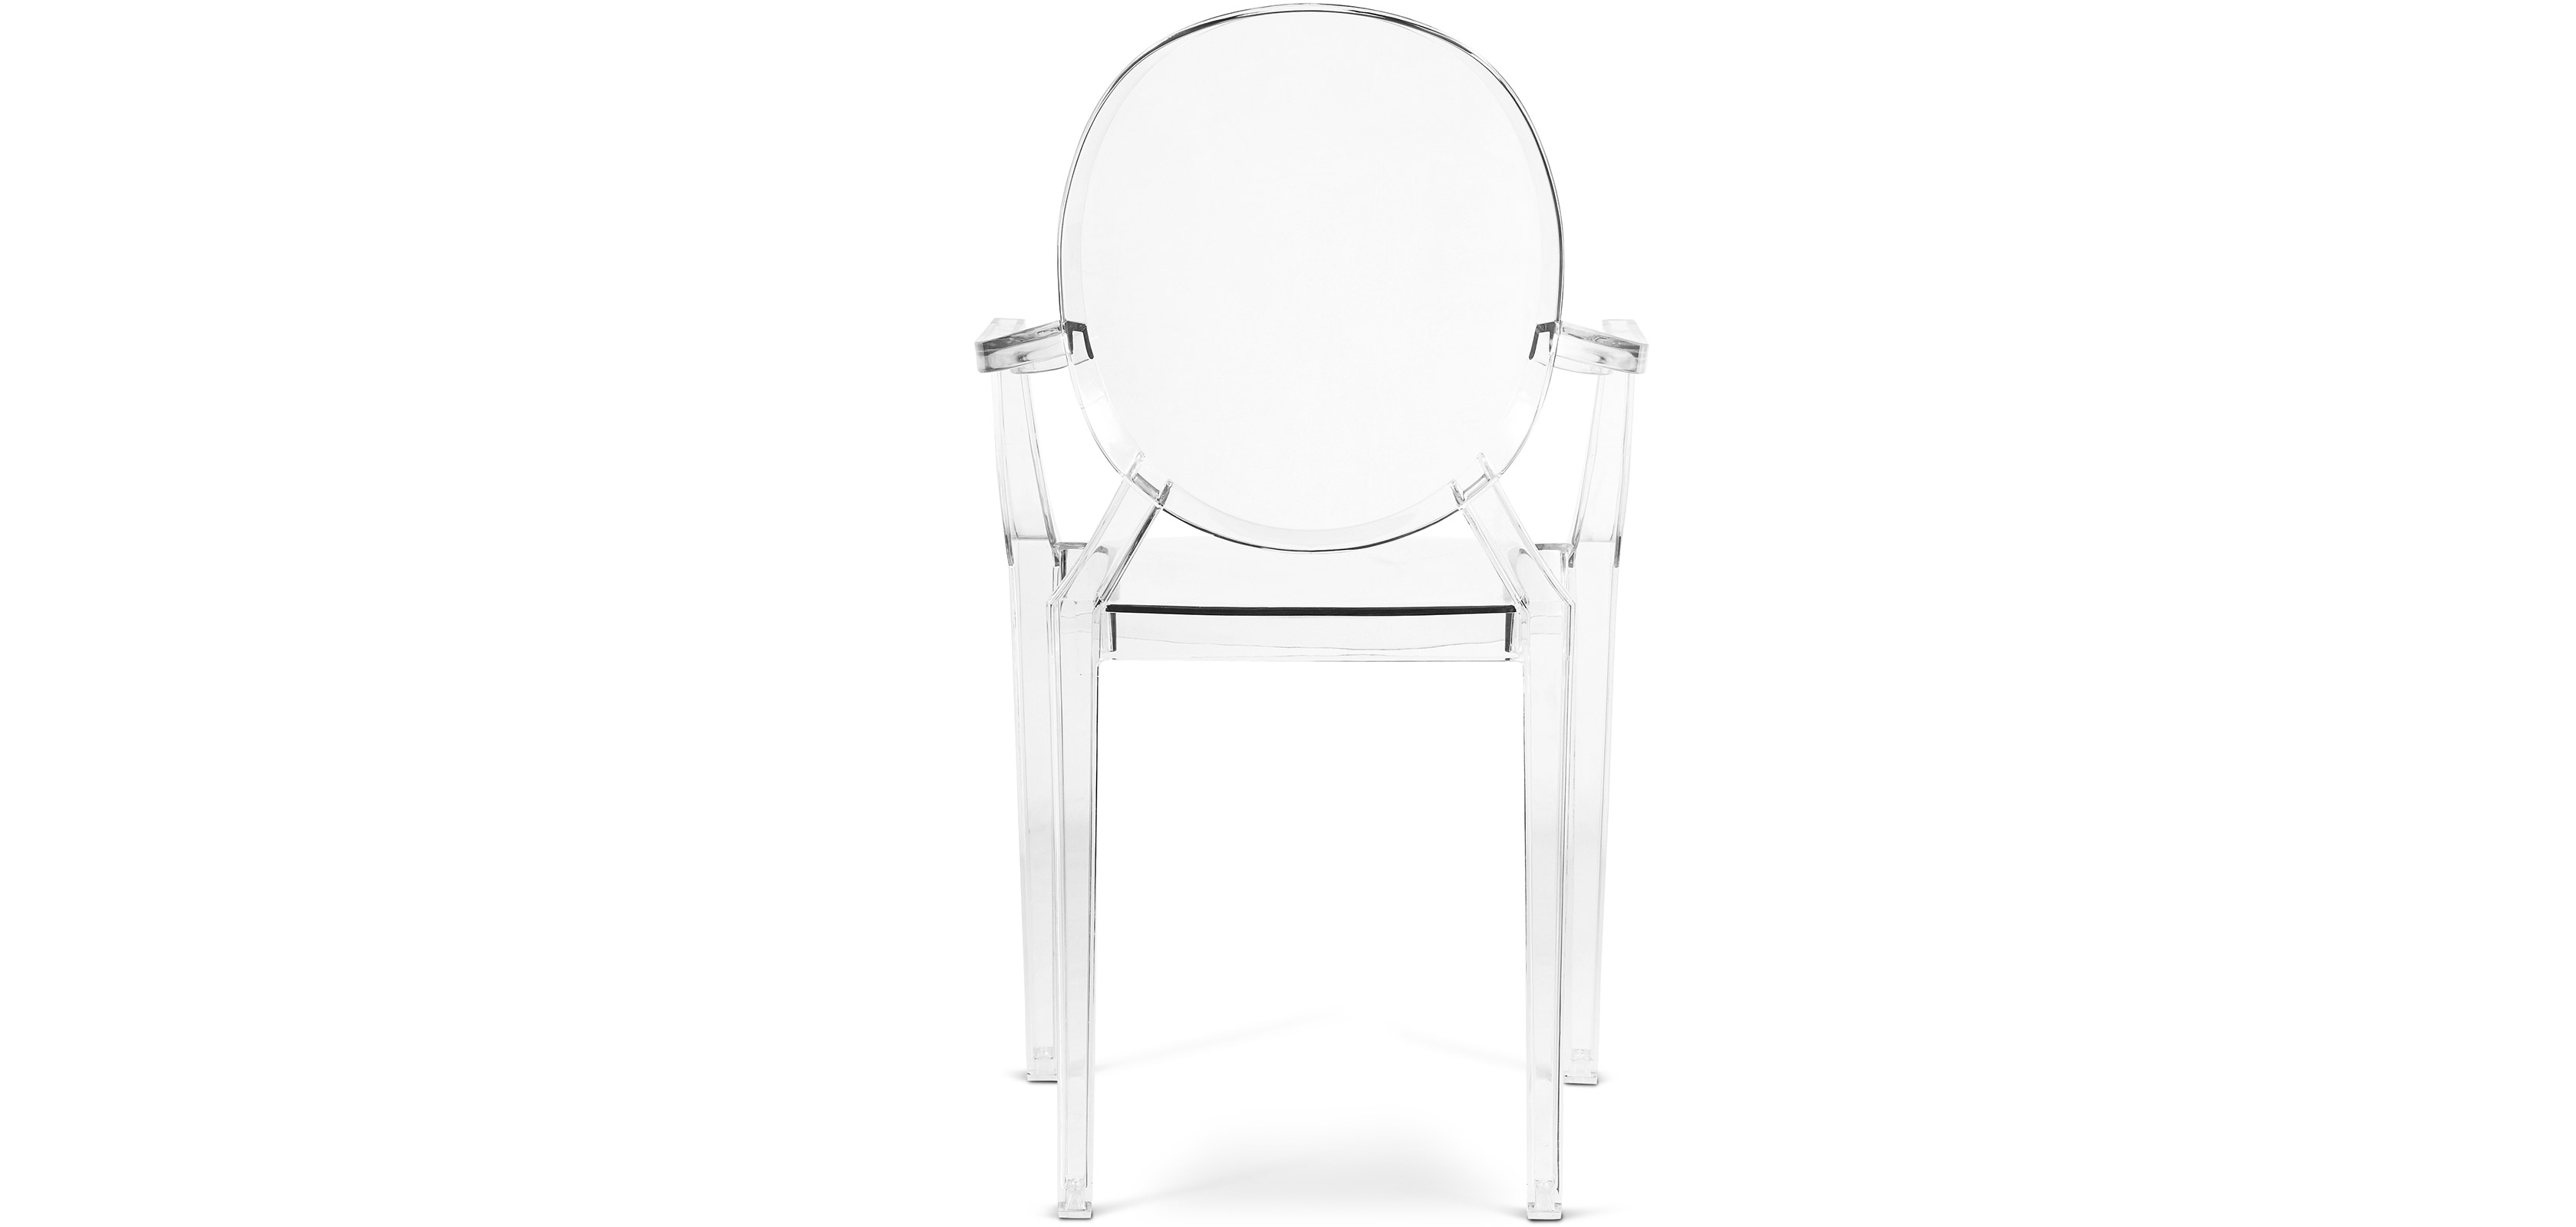 Silla Louis Ghost Silla Louis Ghost Philippe Starck